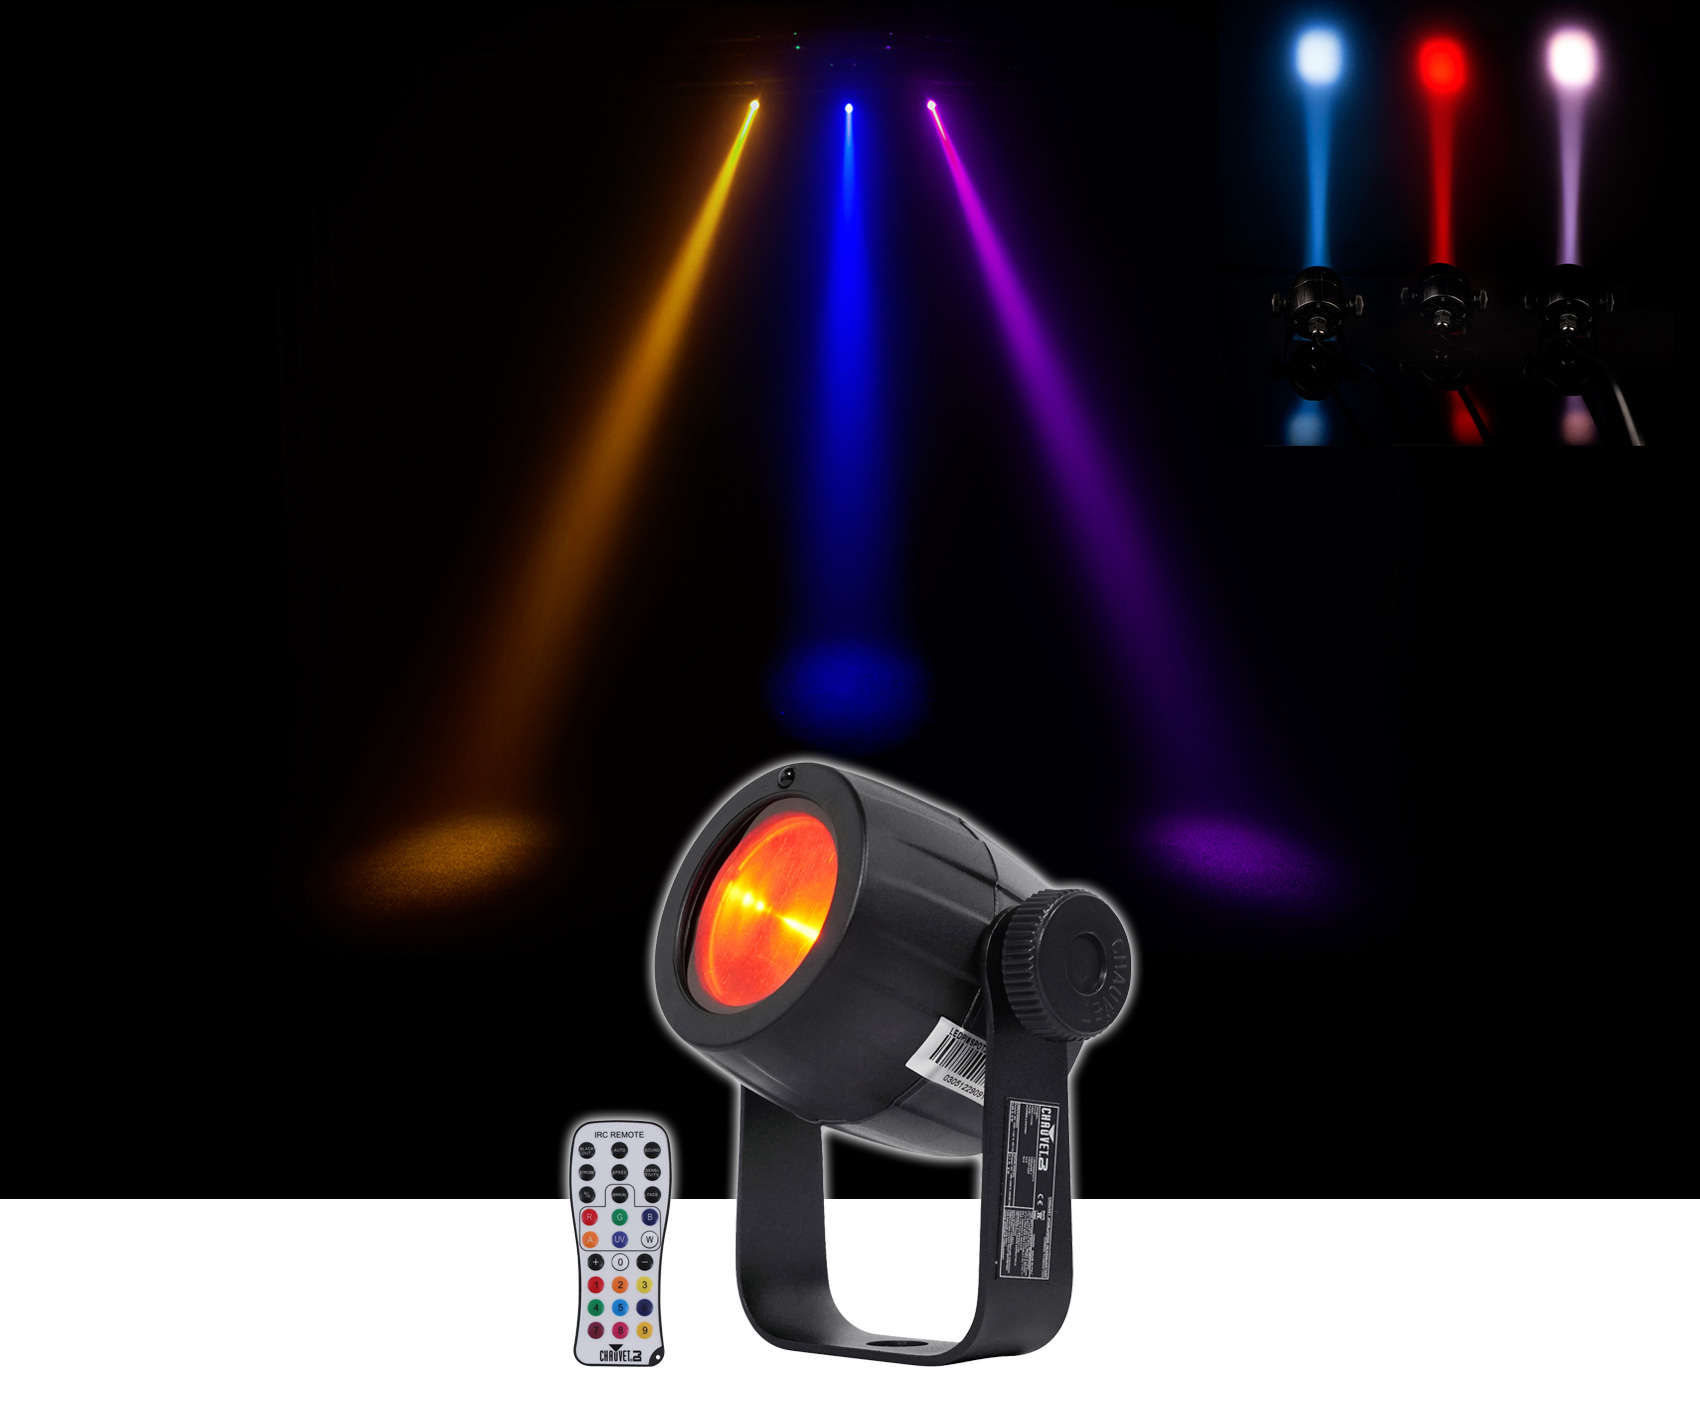 Chauvet DJ LED Pinspot 3 Club Mirror Ball Spot Light w Dimmer+Gel Pack+Remote by CHAUVET